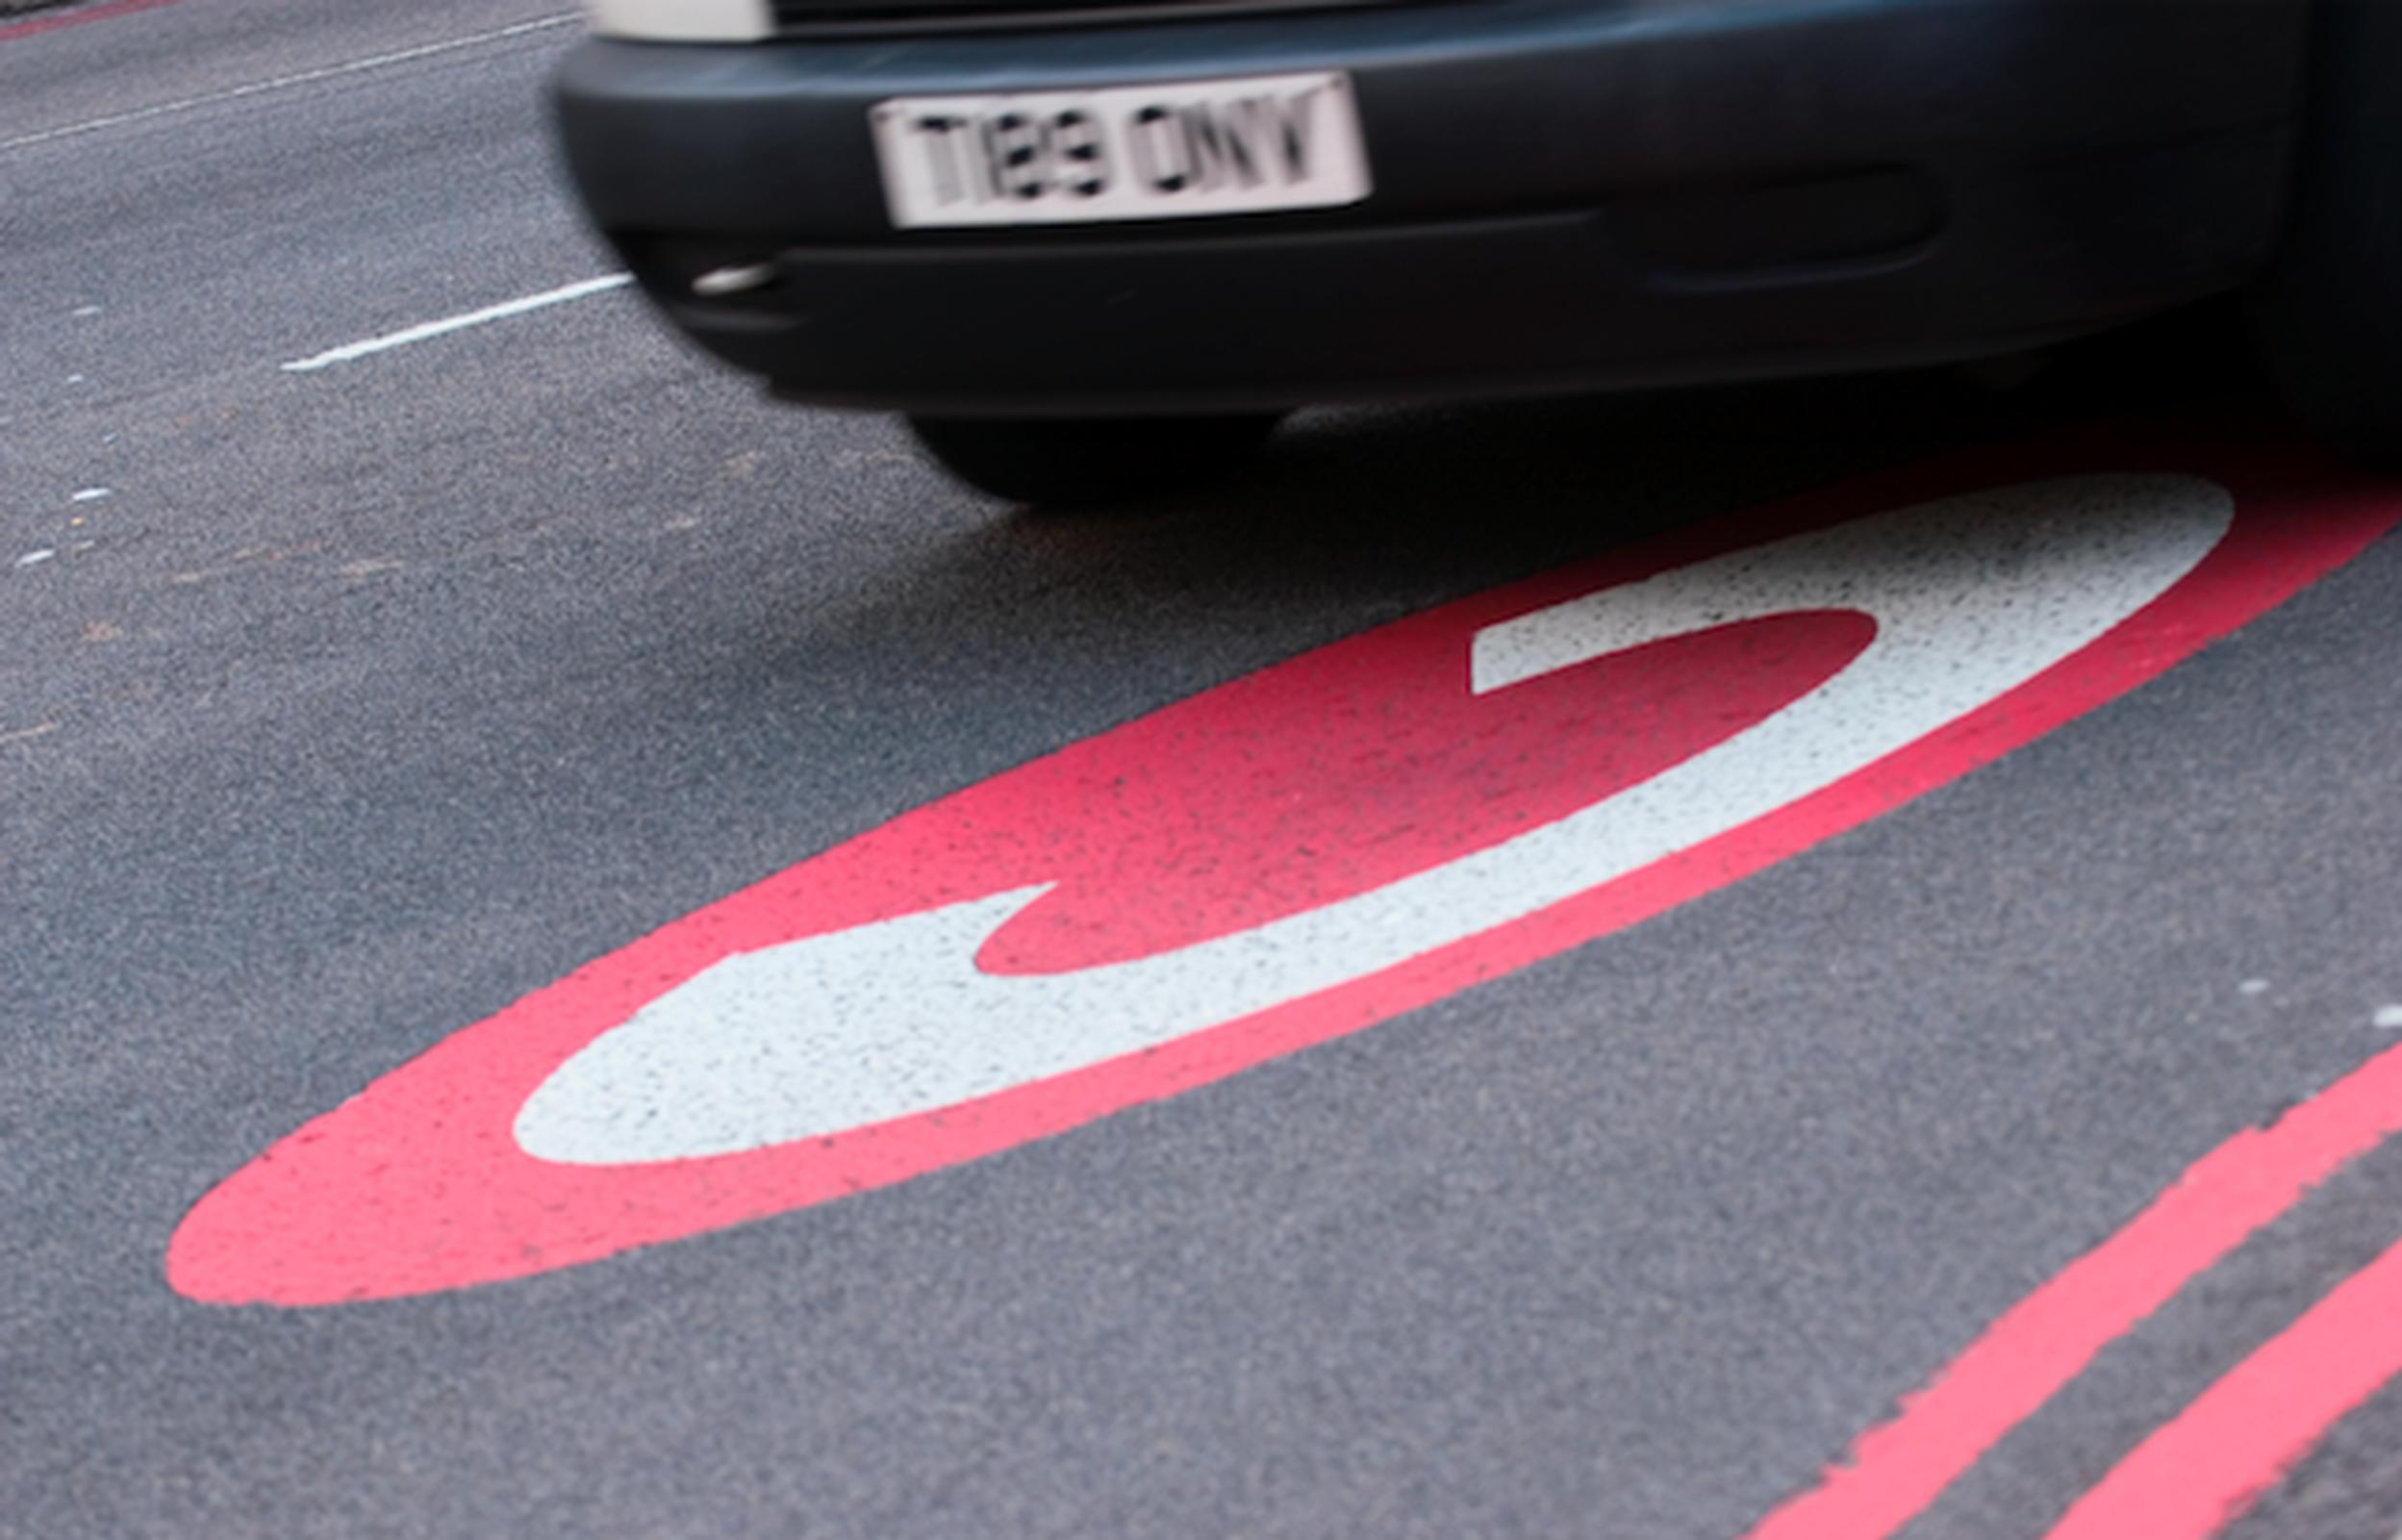 The daily cost of the Congestion Charge could raise to £15